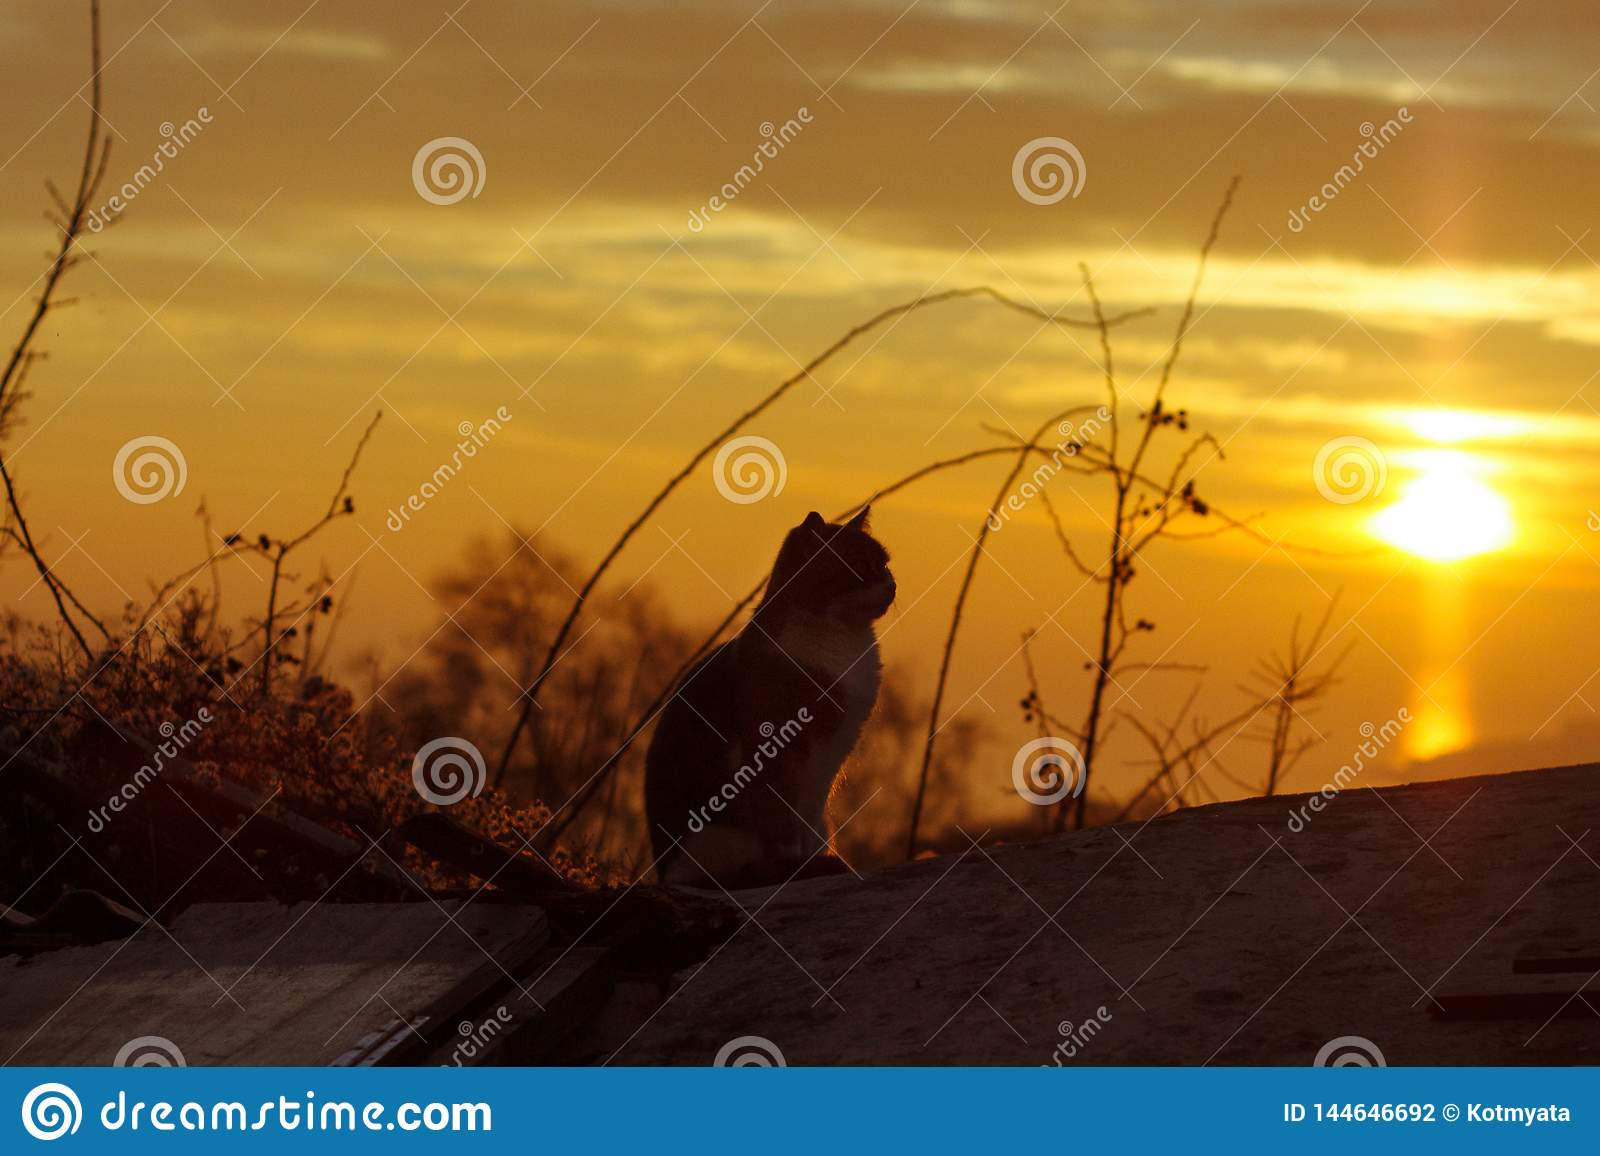 The cat sits on the roof of the house and looks at the sunset